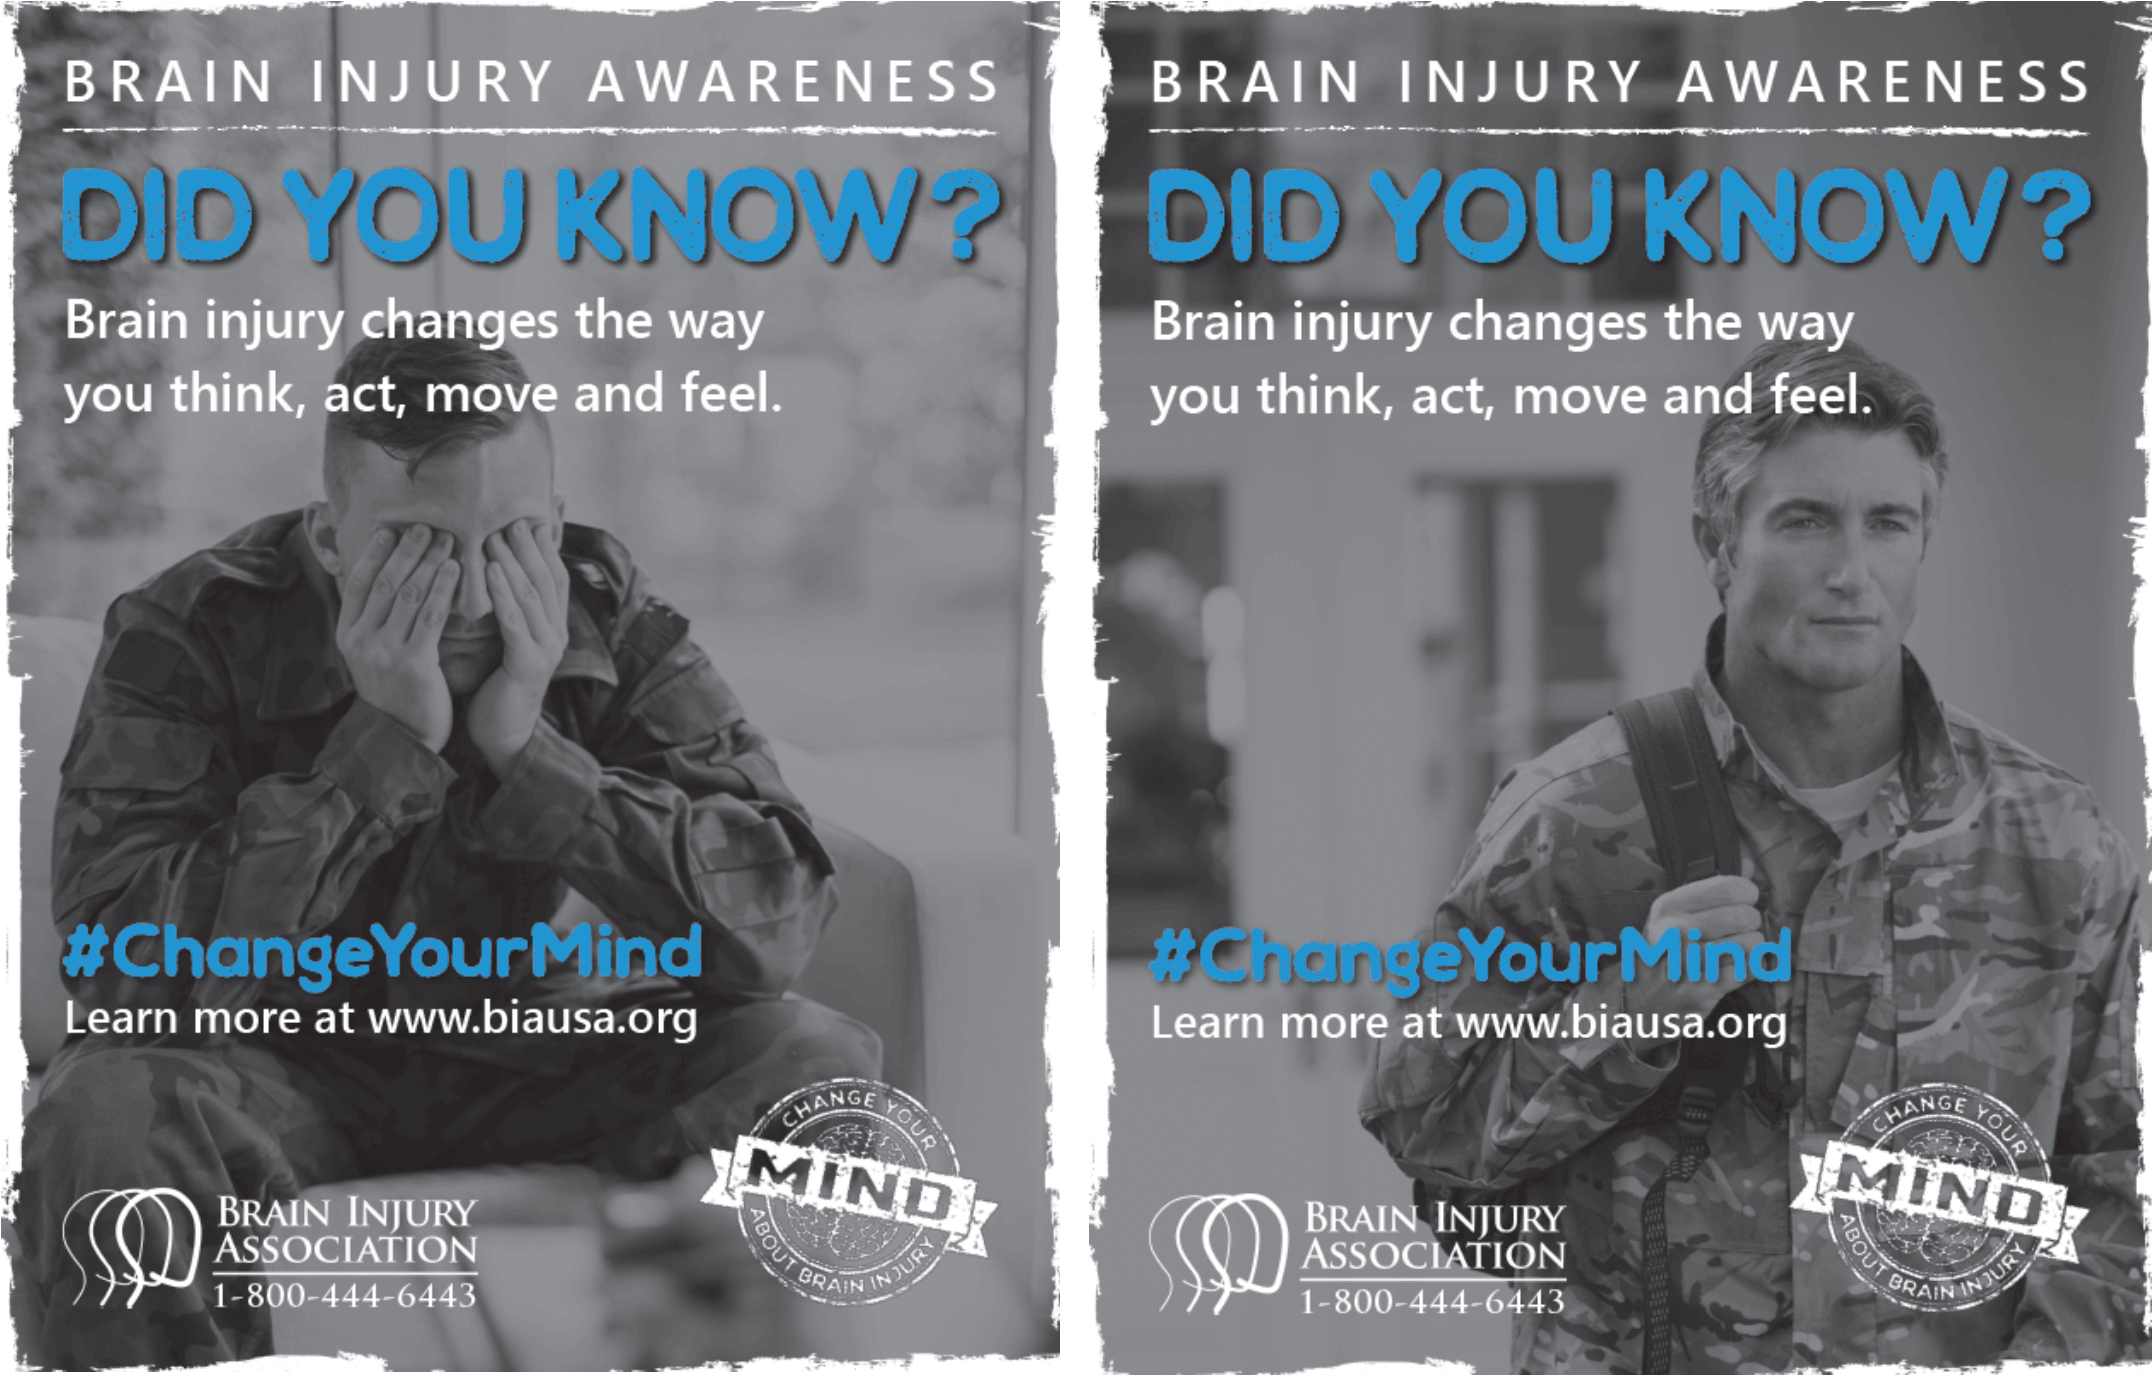 #ChangeYourMind Awareness Campaign: Think, Act, Move & Feel Download Preview